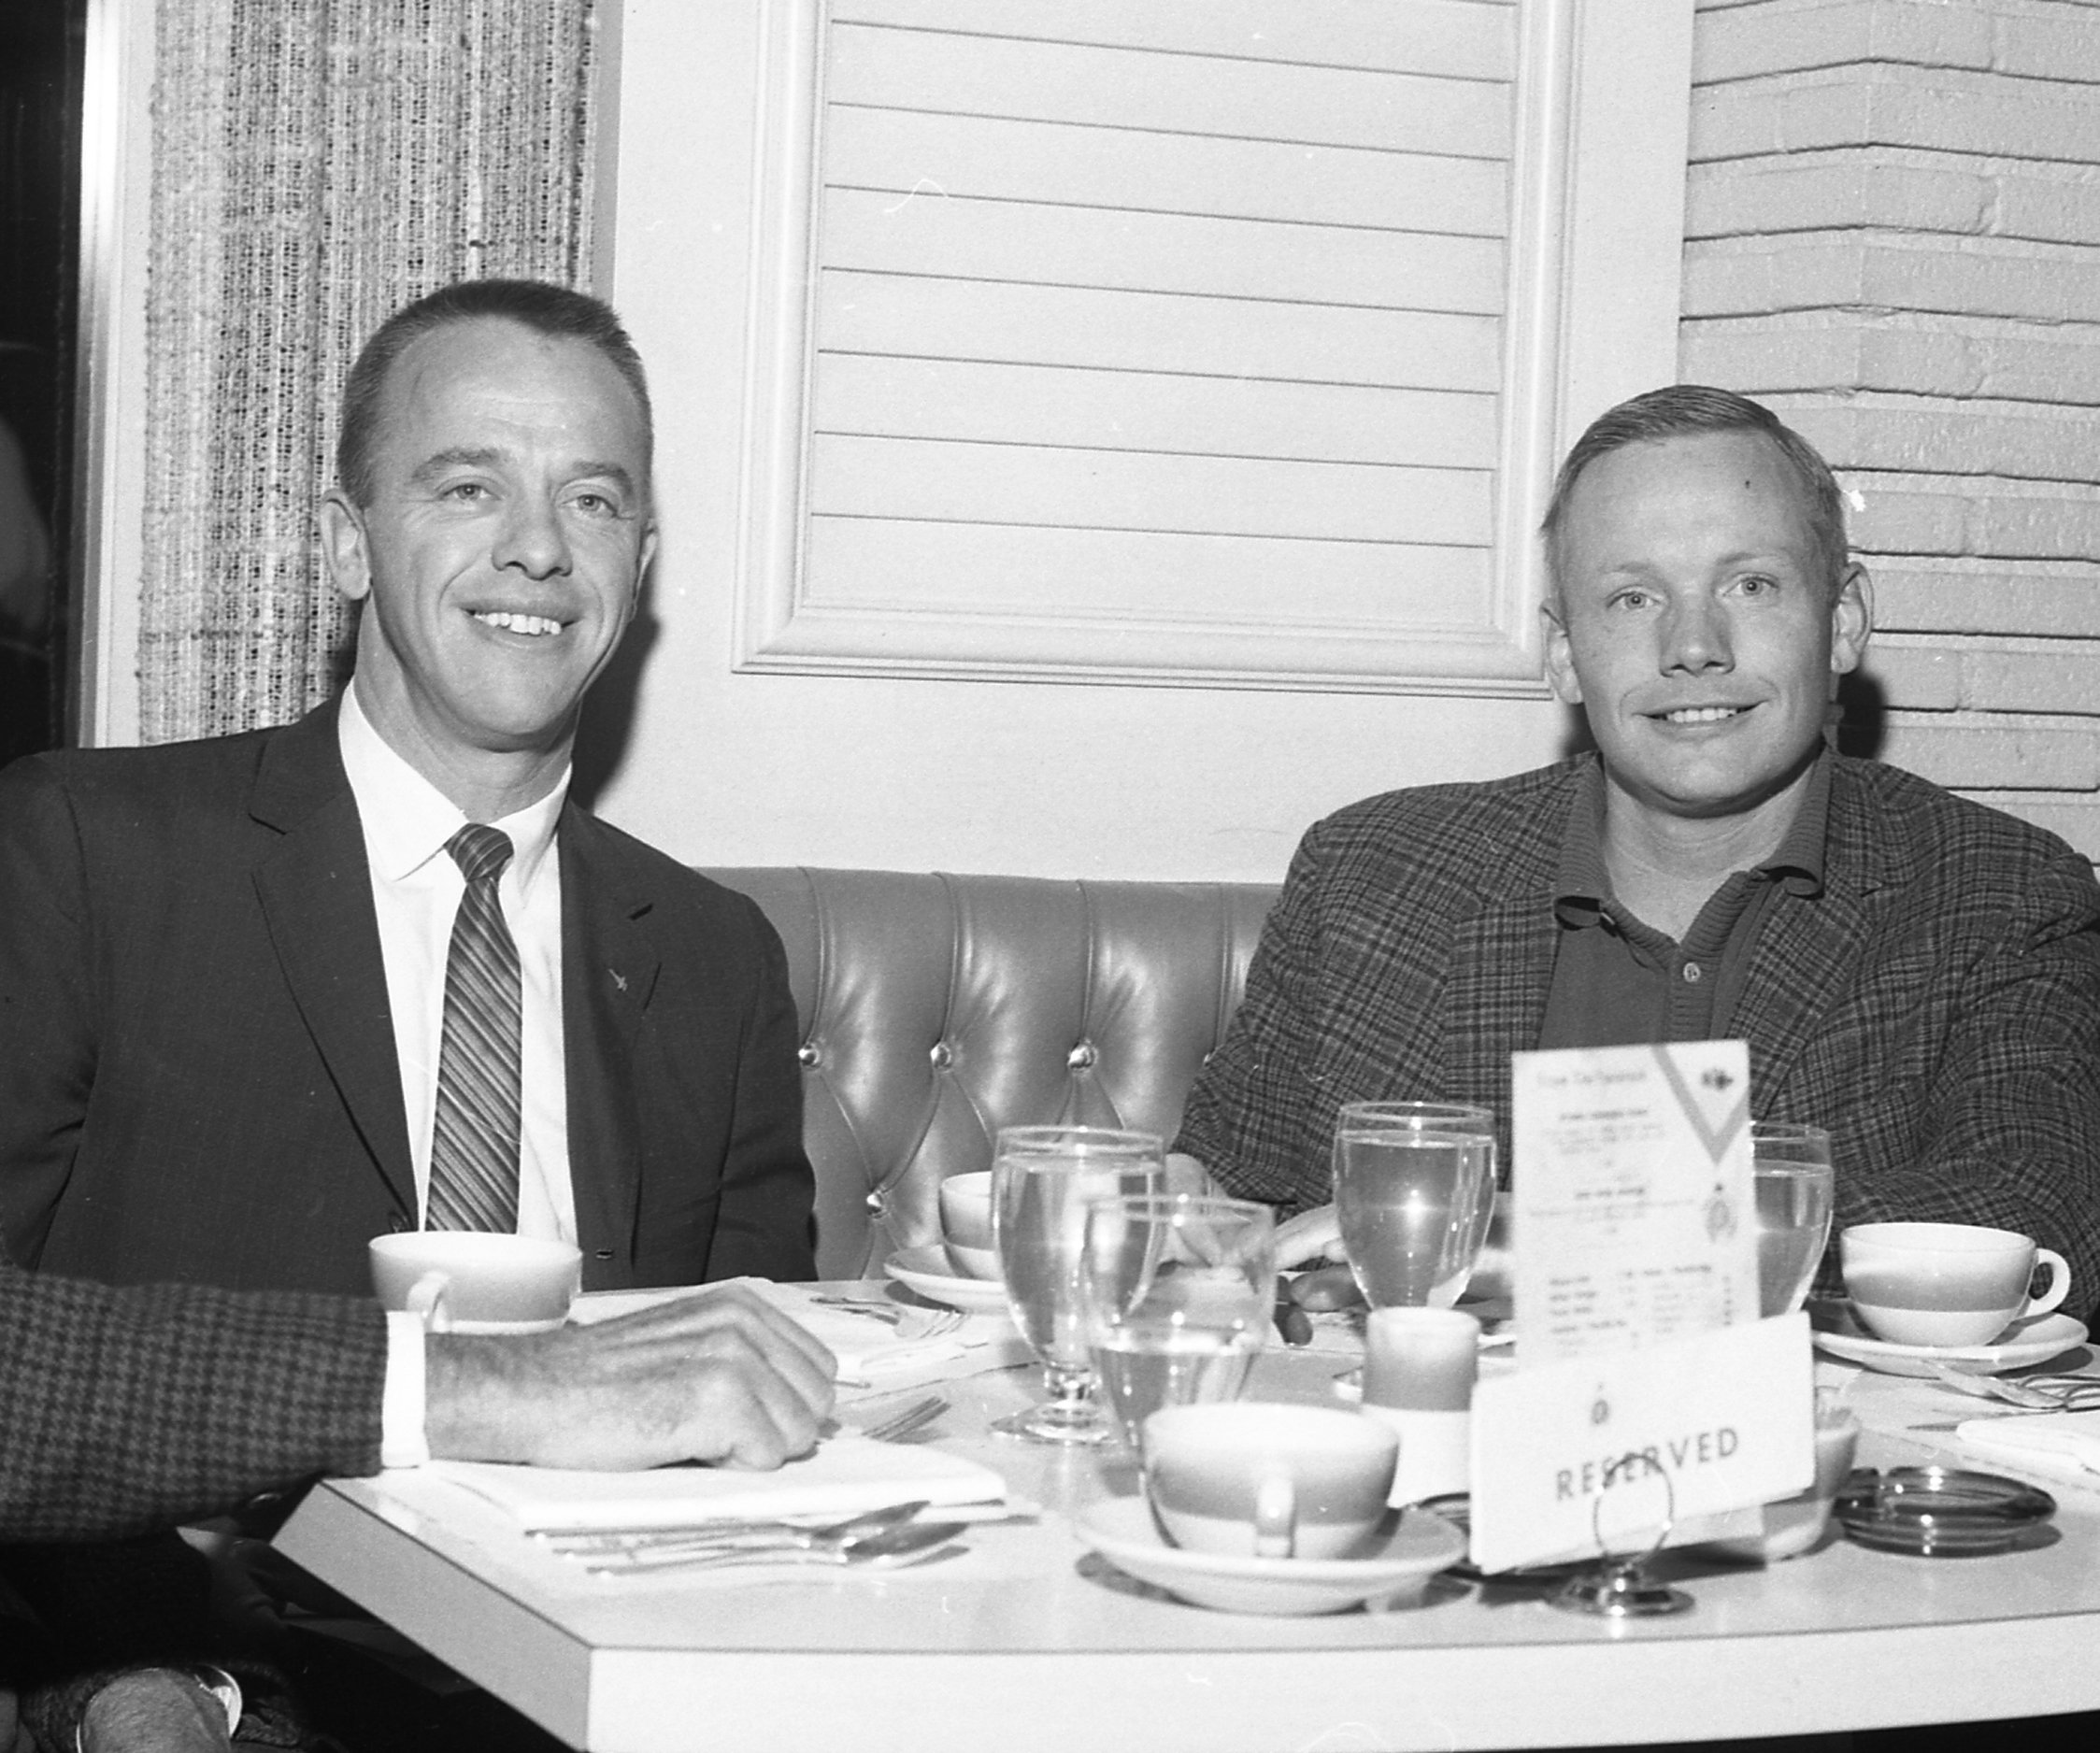 Neil Armstrong and Alan Shepard at the Riviera Hotel in Las Vegas in 1964 (Las Vegas News Bureau Archives)